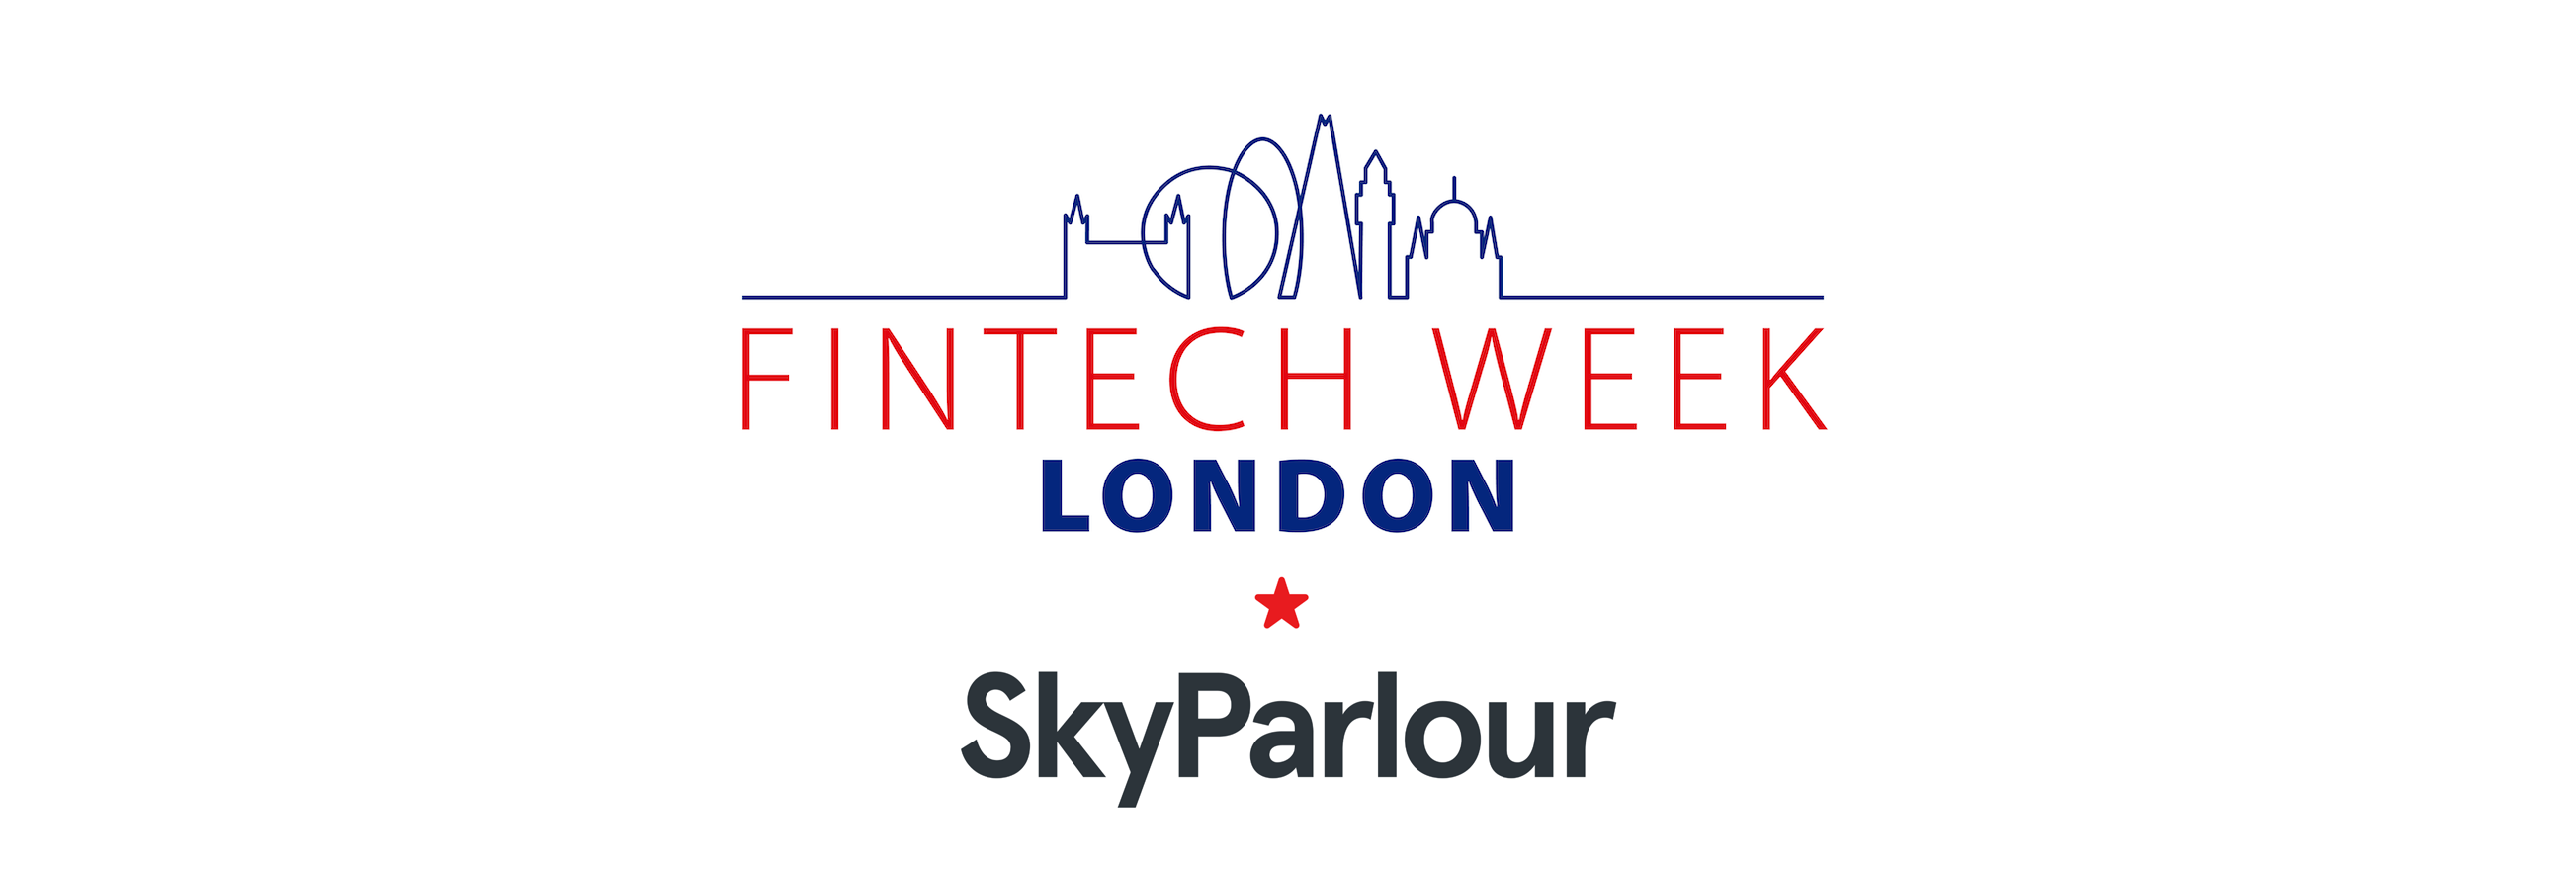 Fintech Week London 2021 Appoints SkyParlour as official PR Agency